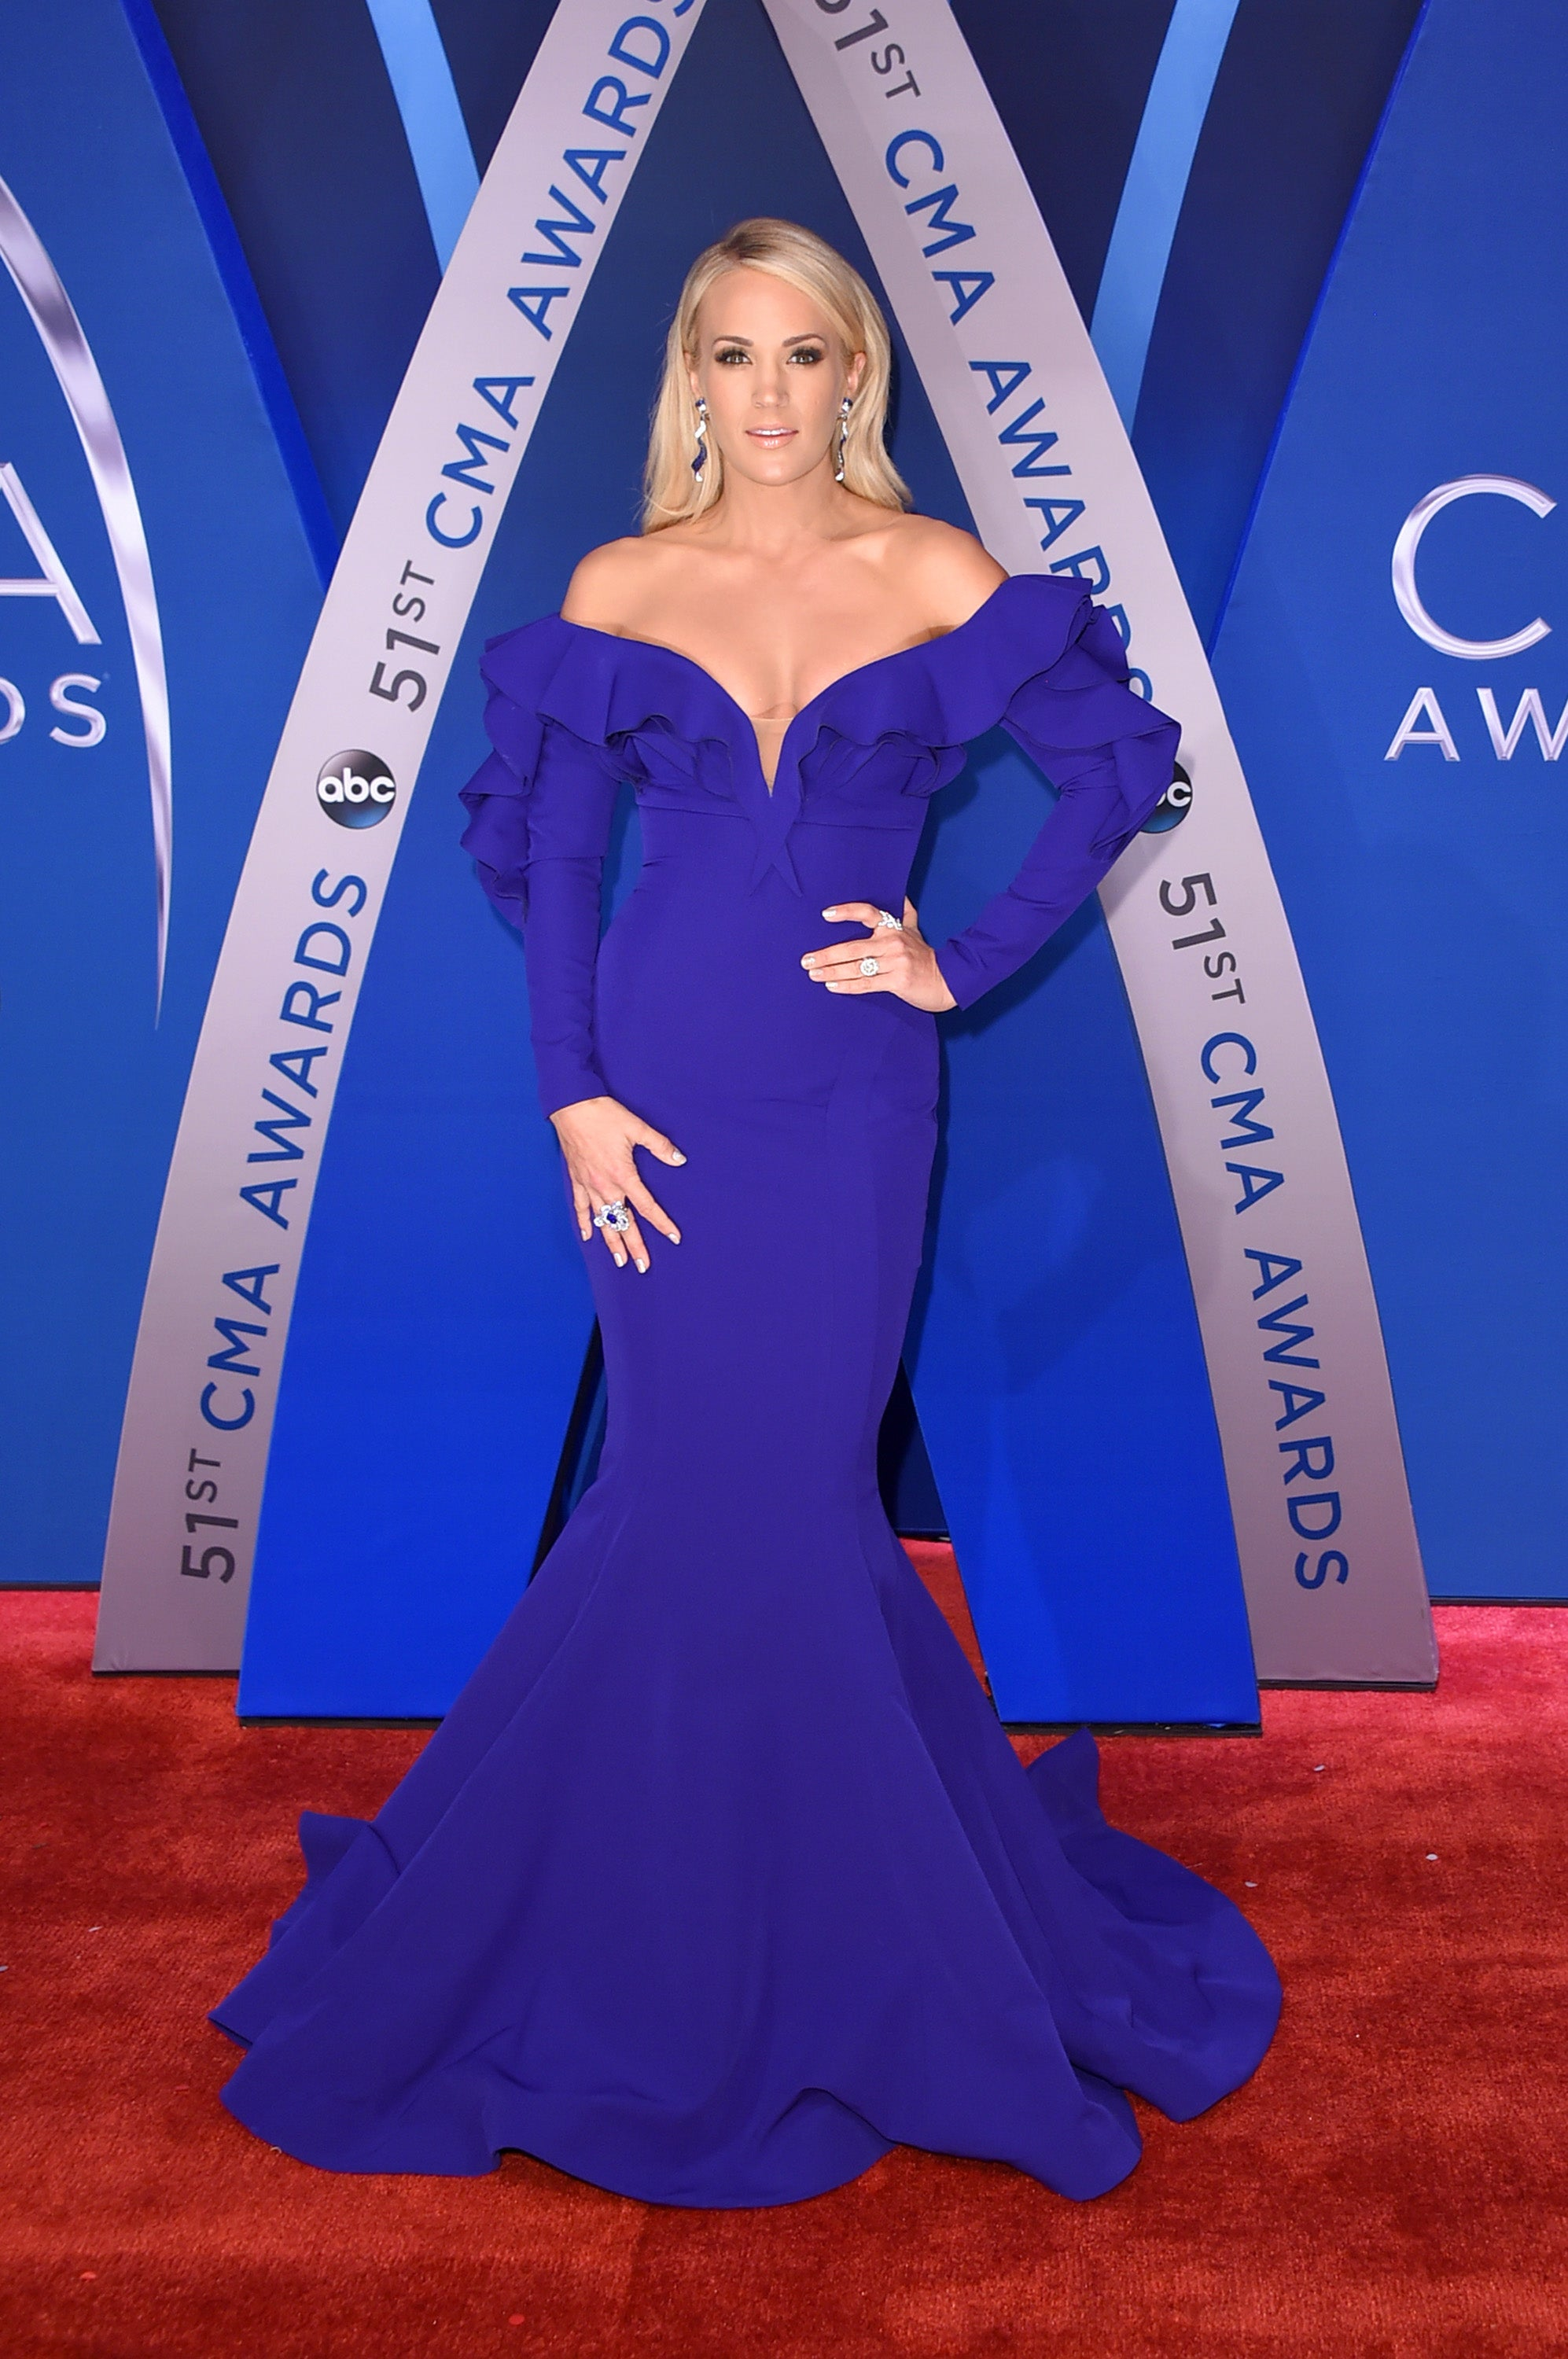 Carrie Underwood CMA Awards 2017